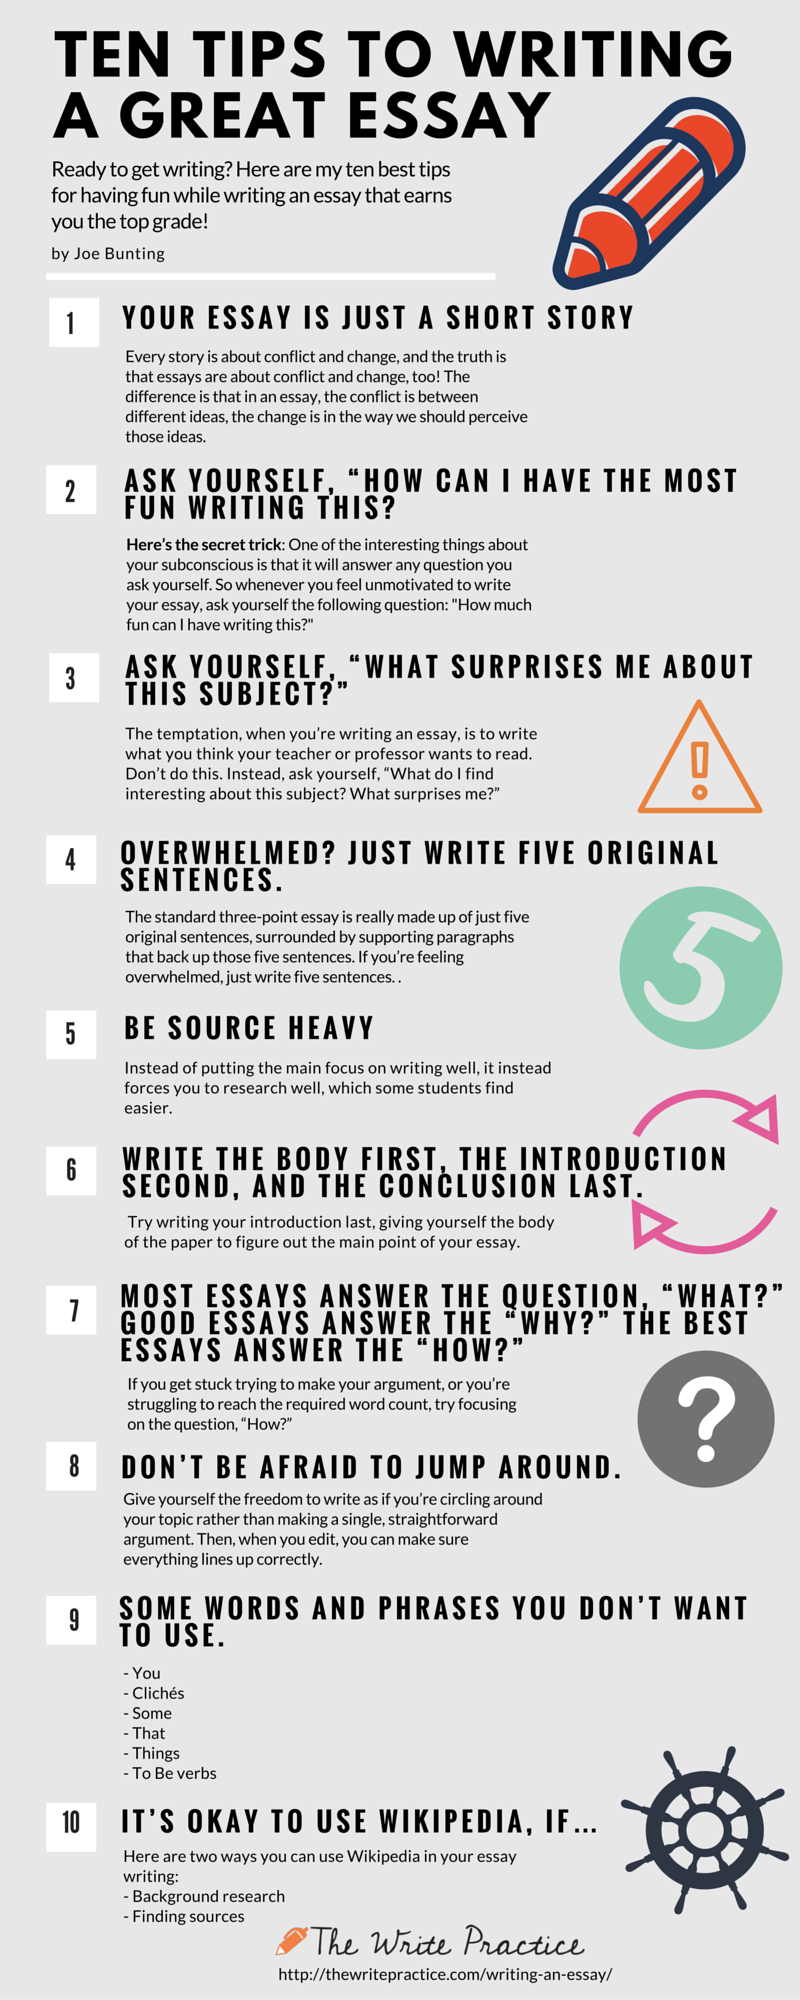 001 Tips For Writing An Essay1 Essay Example How To Write Good Surprising Essays Best Pdf A Better Bryan Greetham Learning In English Full